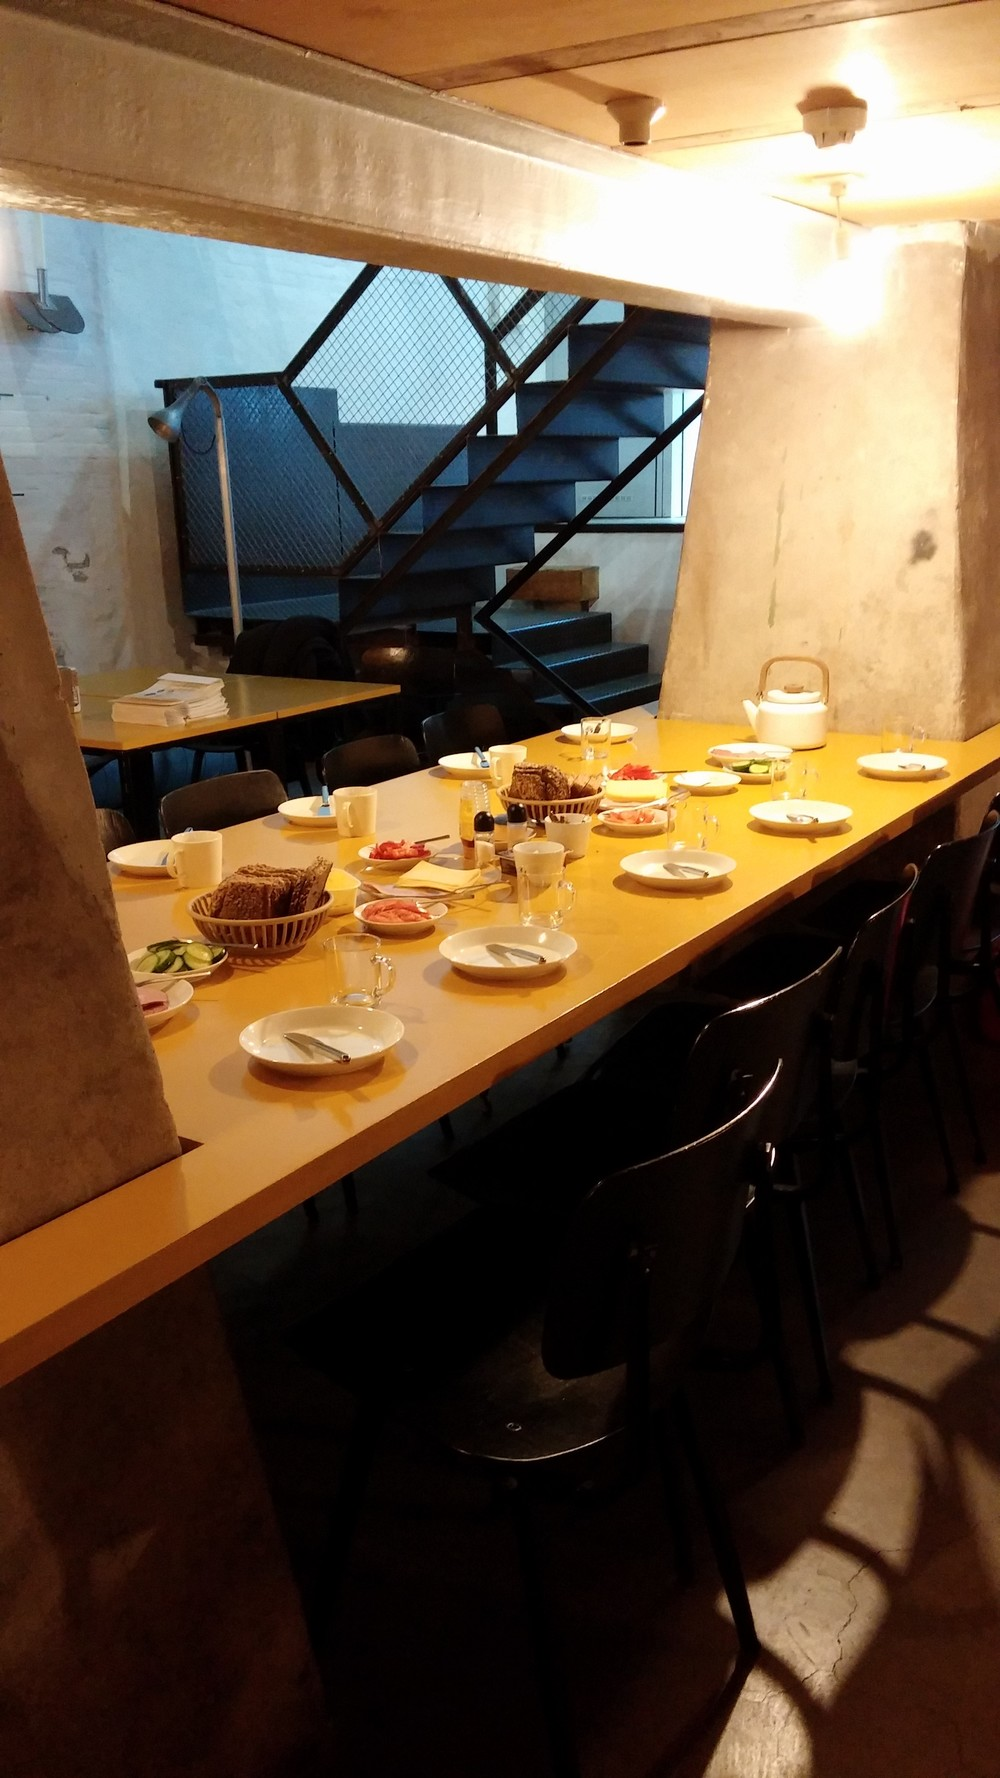 Lunch for 10 people. Good thing traditional Dutch lunch is just DIY sandwiches.